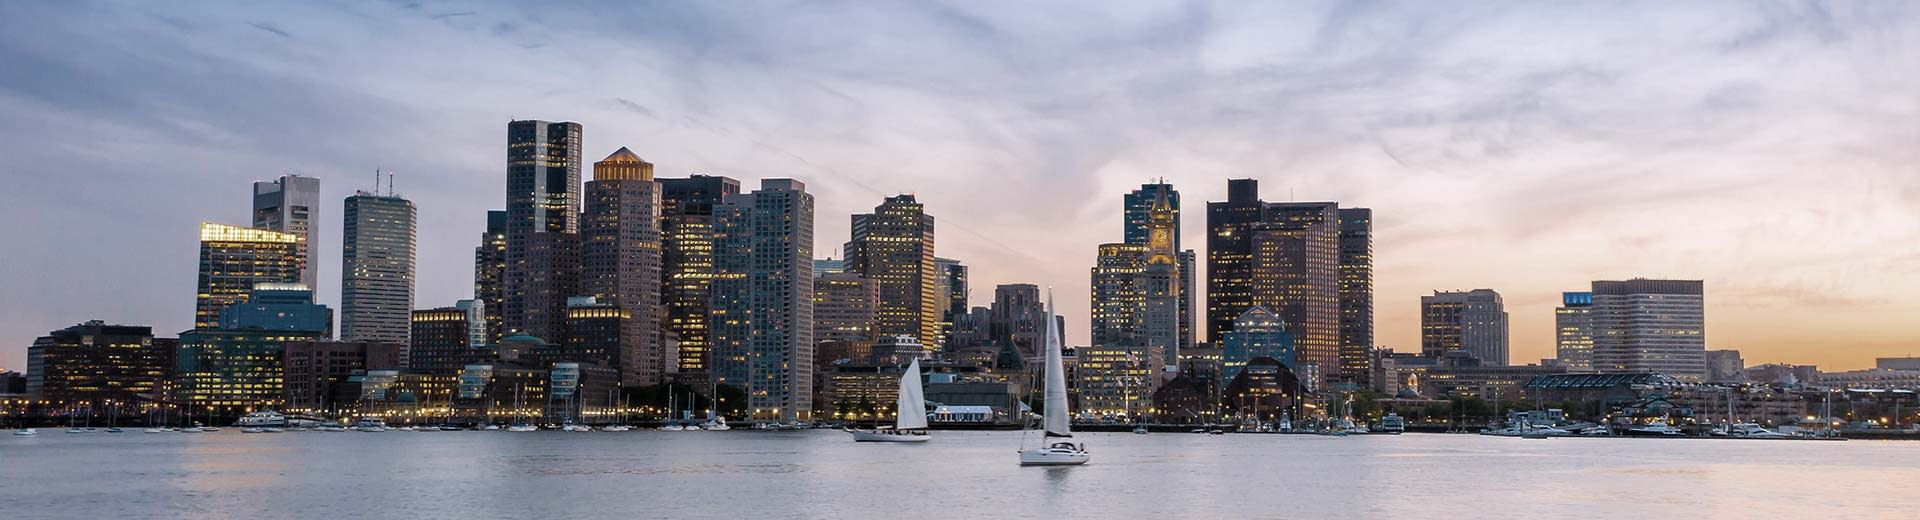 Panorama shot of the Boston business center at sunset from across the harbor